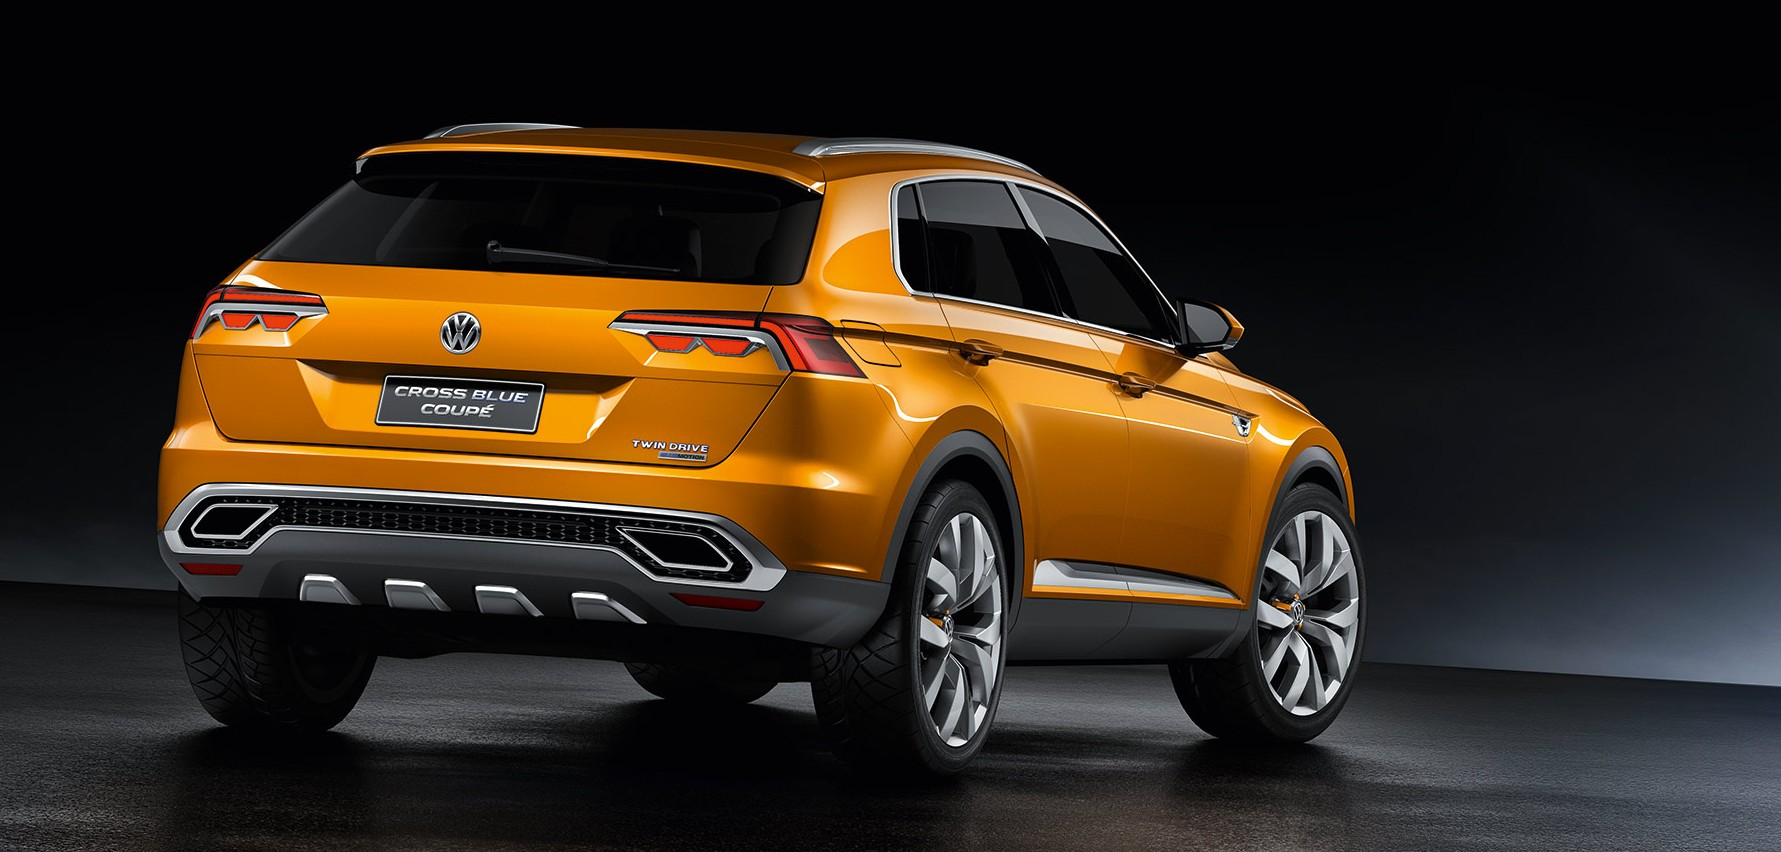 volkswagen-crossblue-coupe-concept-015